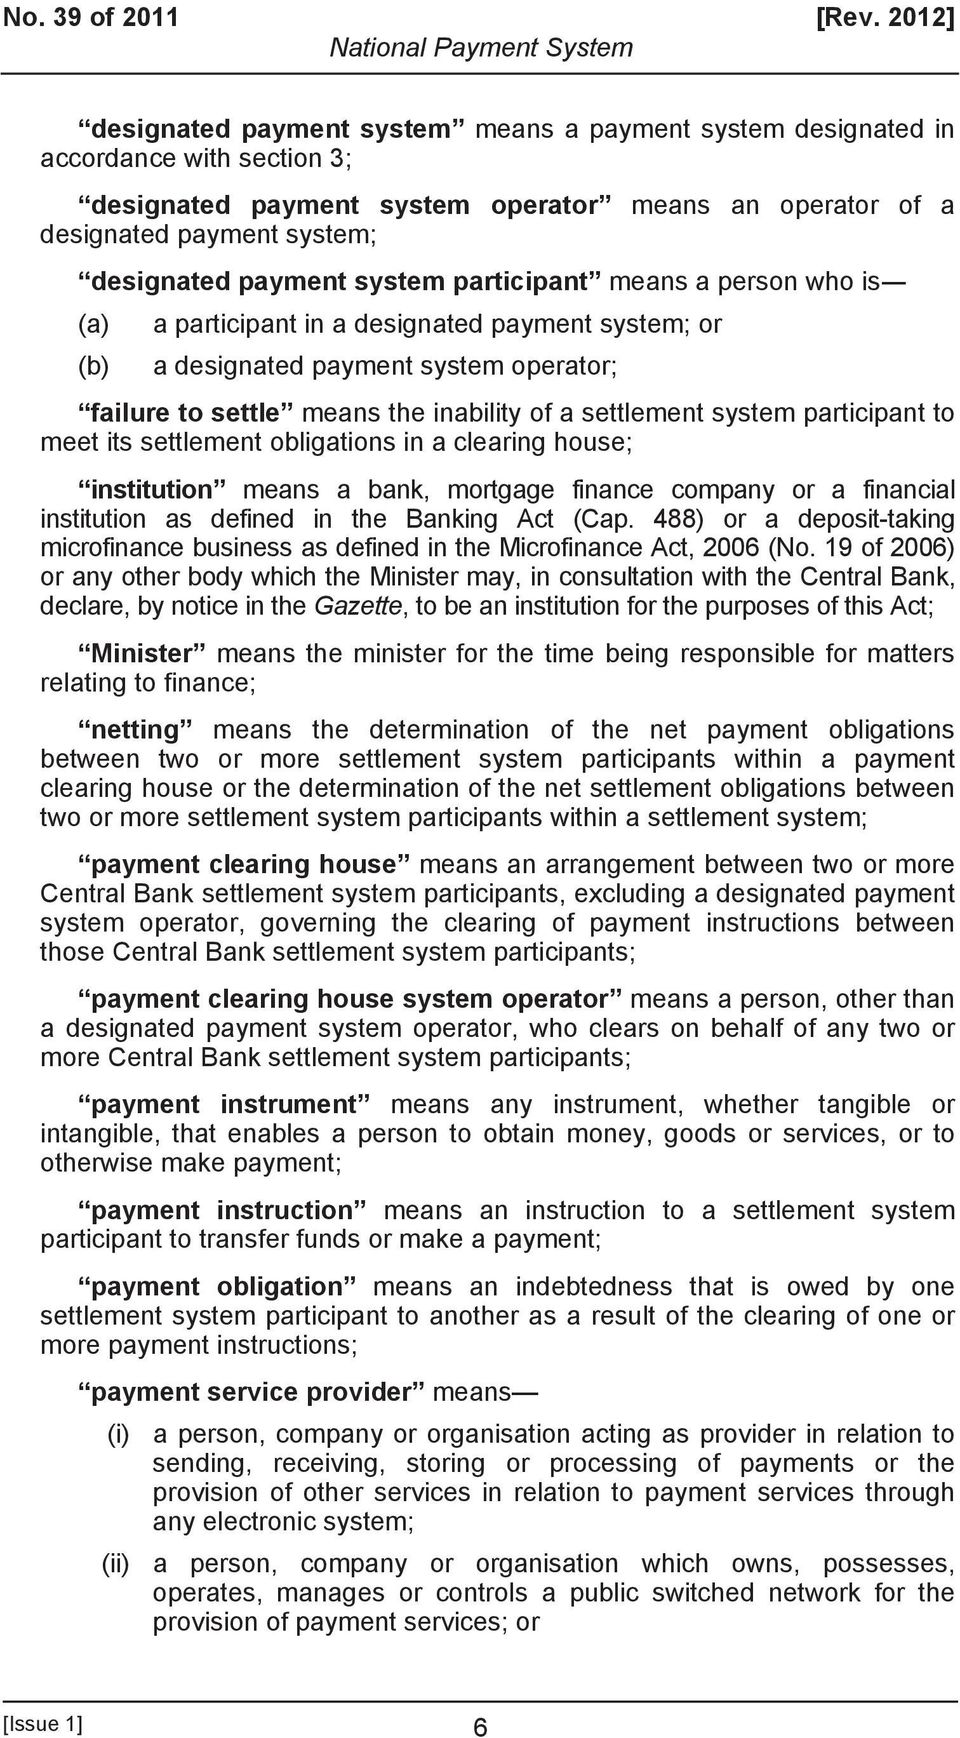 system participant means a person who is (a) a participant in a designated payment system; or (b) a designated payment system operator; failure to settle means the inability of a settlement system